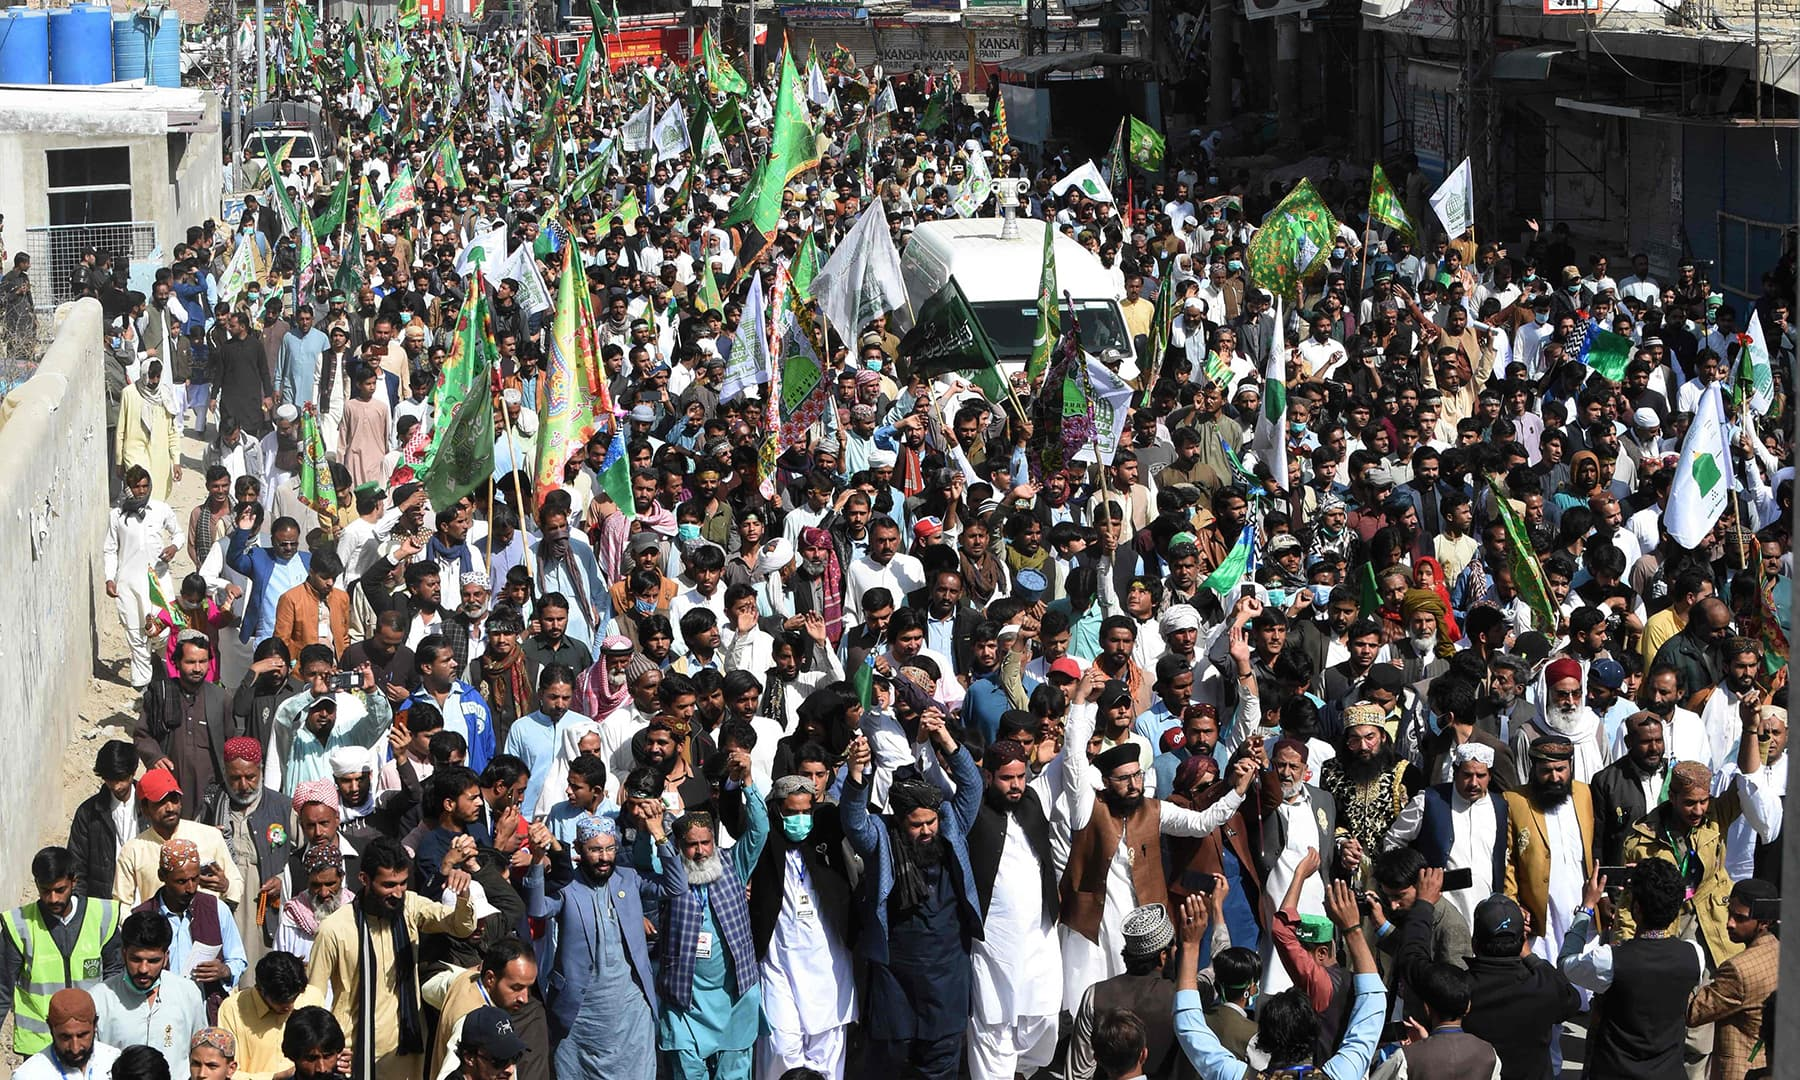 Participants march during a rally to celebrate Eid-i-Miladun Nabi in Quetta on October 30. — AFP